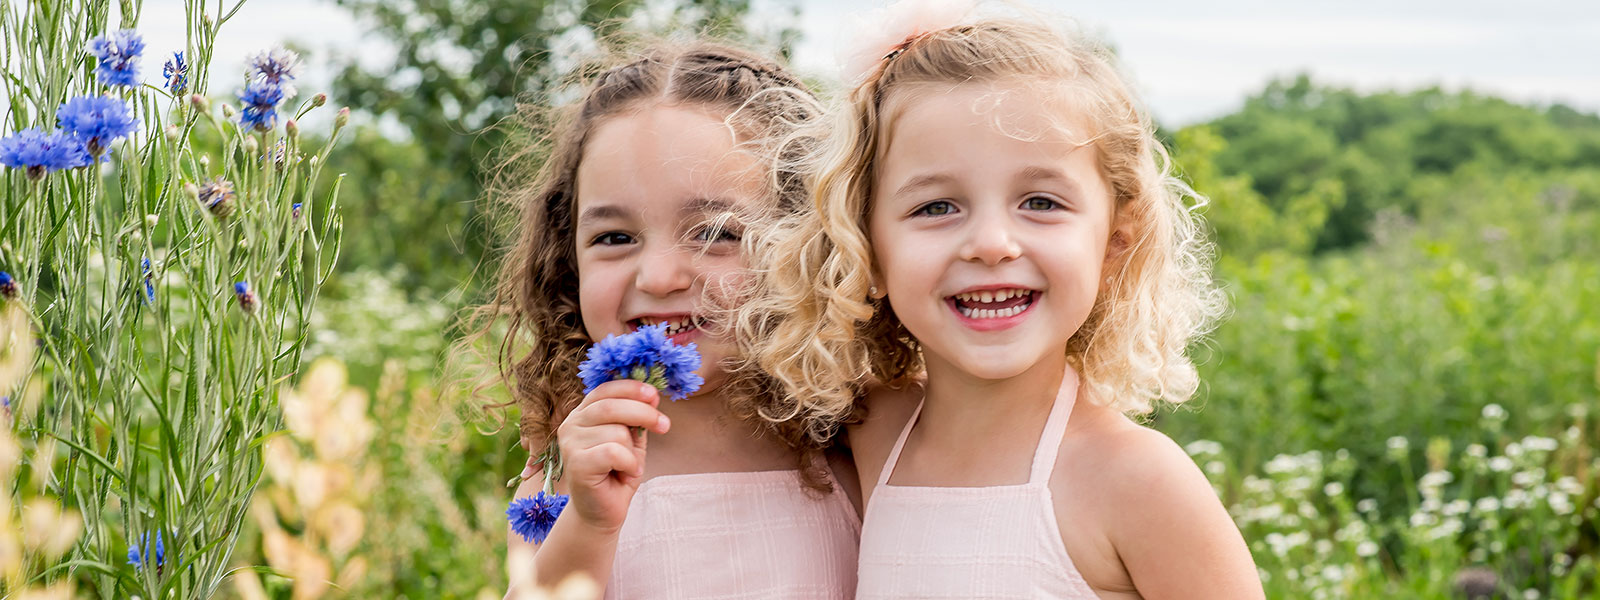 Photo of sisters in a meadow by Southern Pennsylvania and Philadelphia family photographer Tara Lynn of Silver Orchid Photography